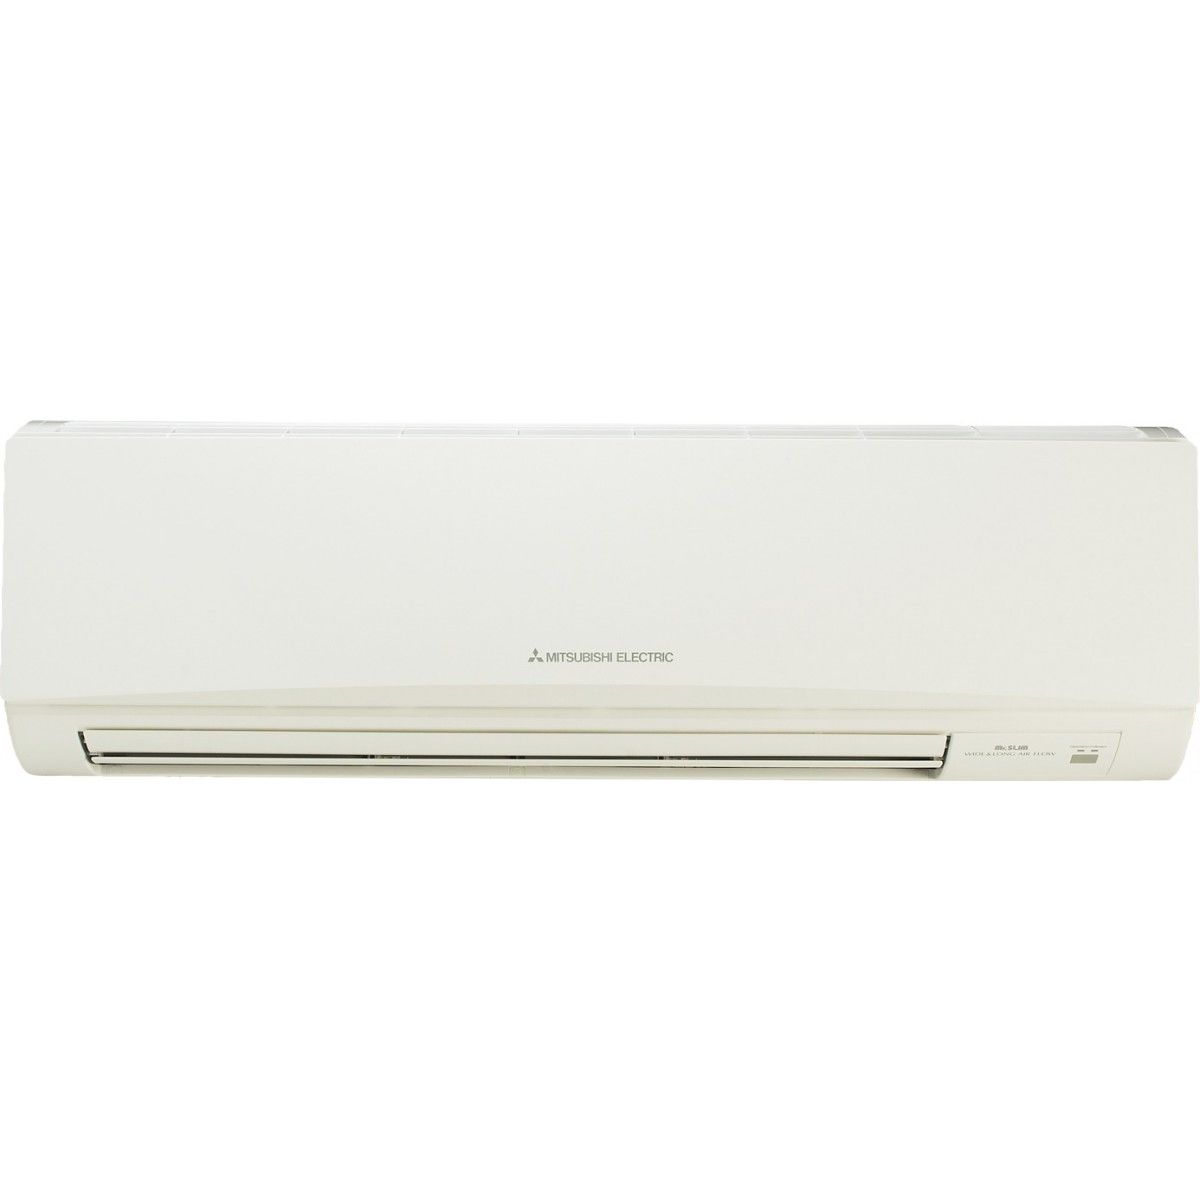 Wall Mounted Heat And Air Units : K btu mitsubishi mszd wall mounted heat pump indoor unit